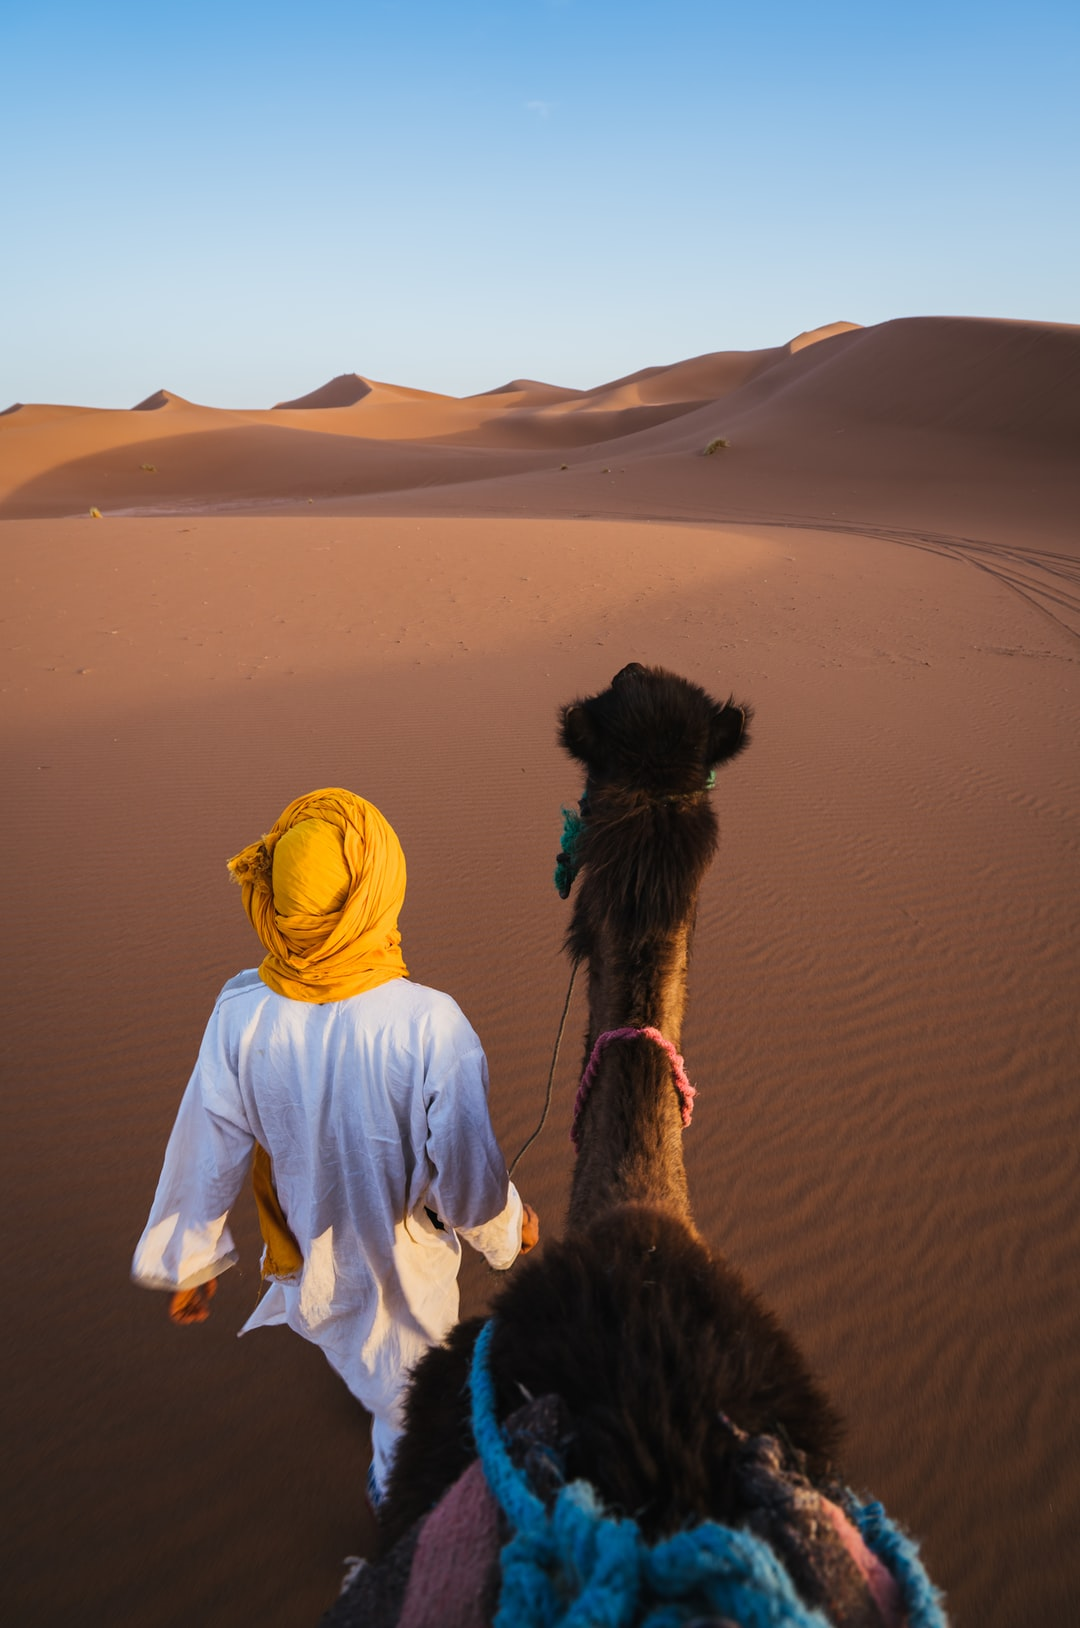 man walking on desert with camel